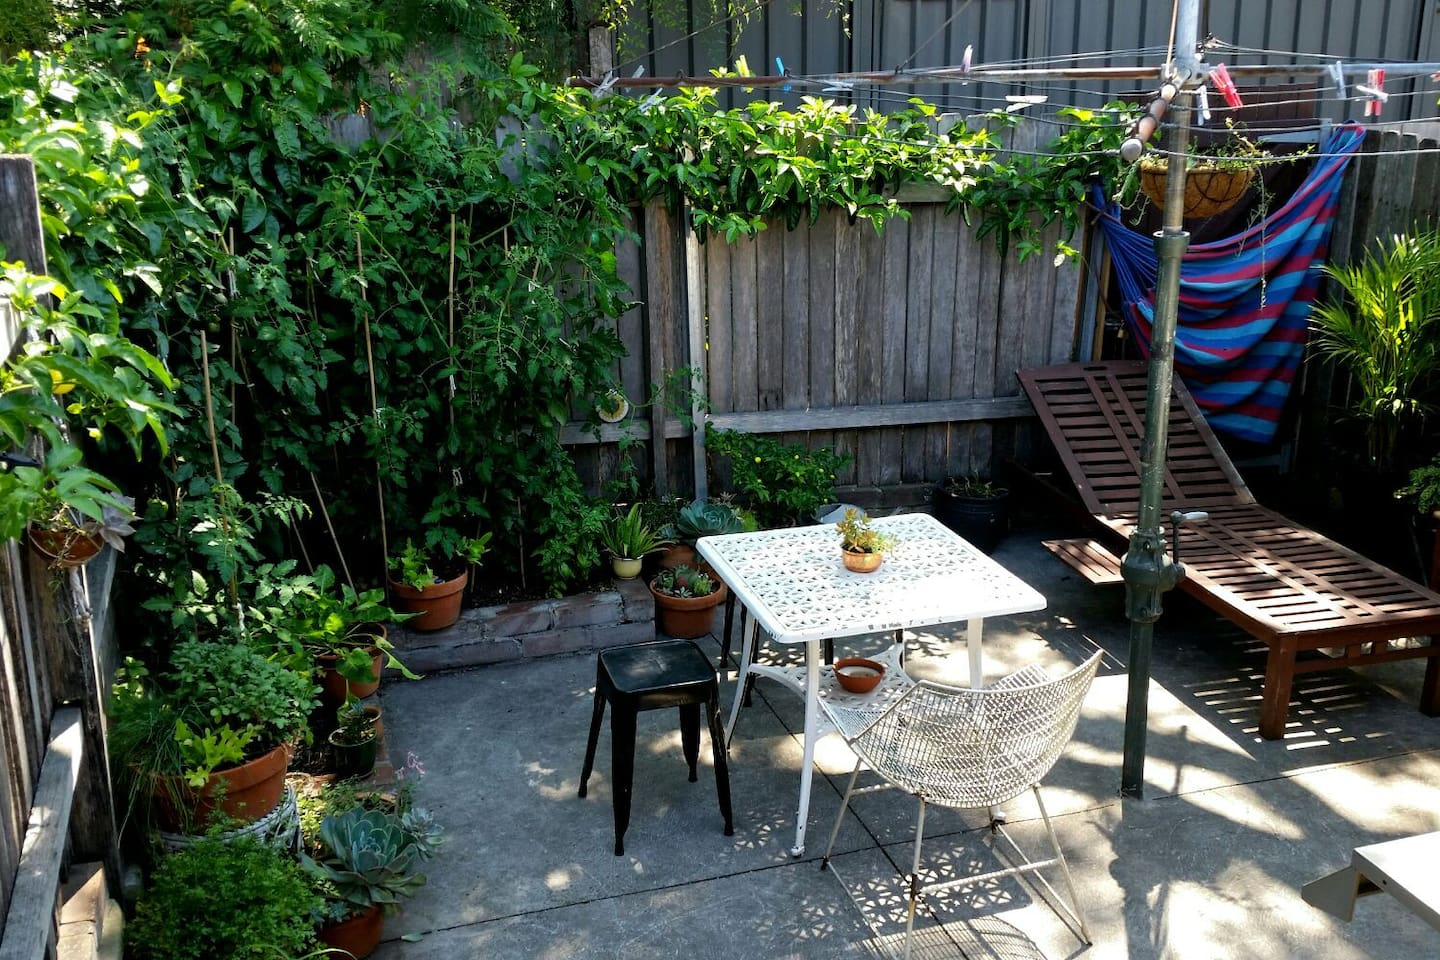 Leafy private courtyard with BBQ, sun lounge and herb garden (Bonus: iconic Australian Hills Hoist clothesline).